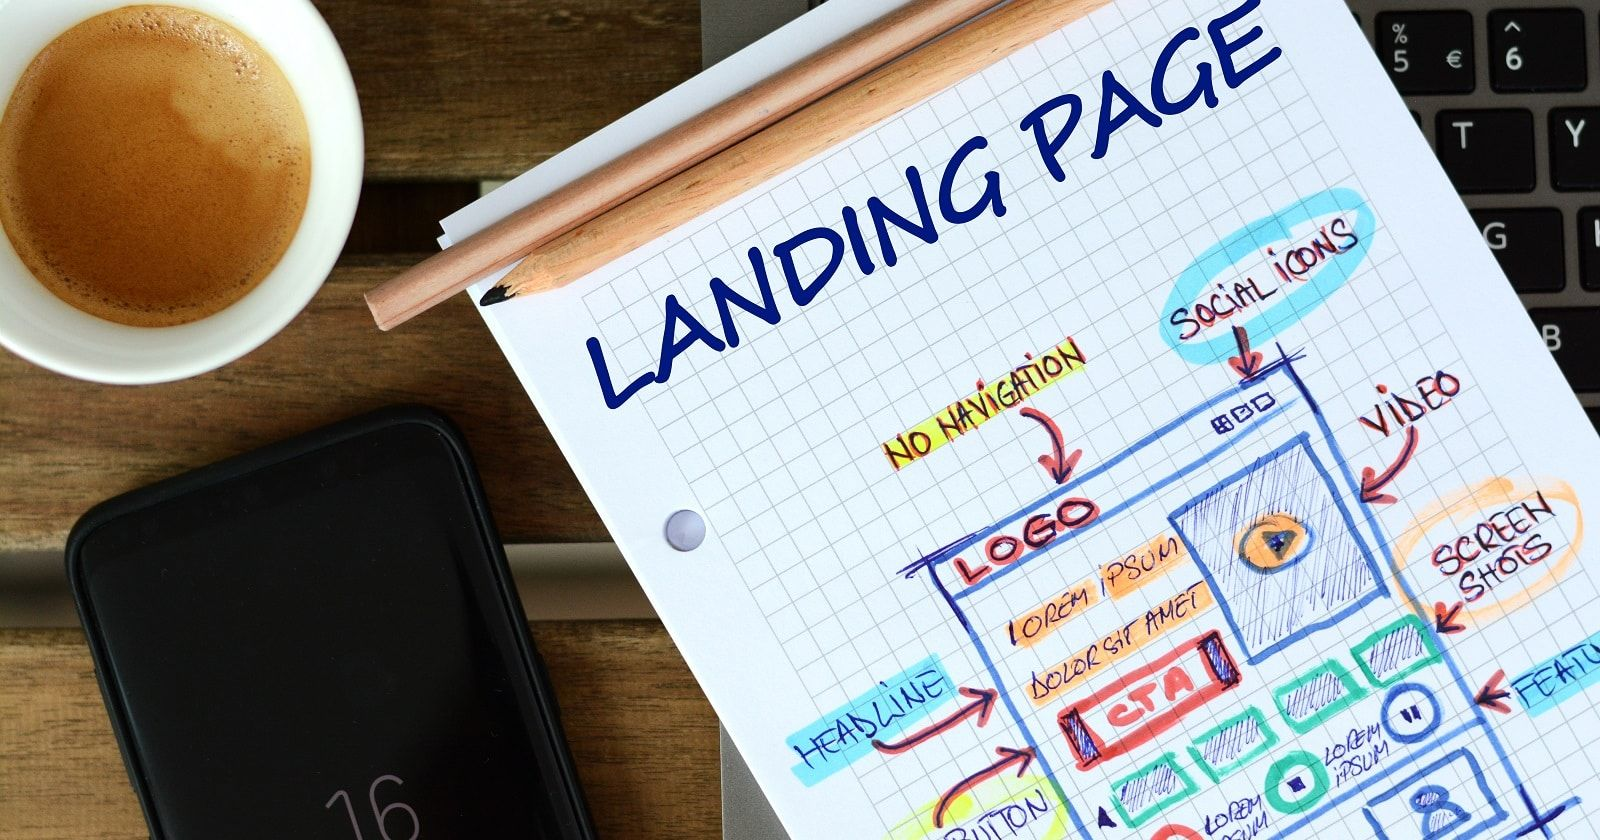 Here's an #SEO checklist on how to make the right landing page rank. ↪️ via @ab80 https://t.co/OjeA5aZ8Kp https://t.co/TrZc3HNR9E